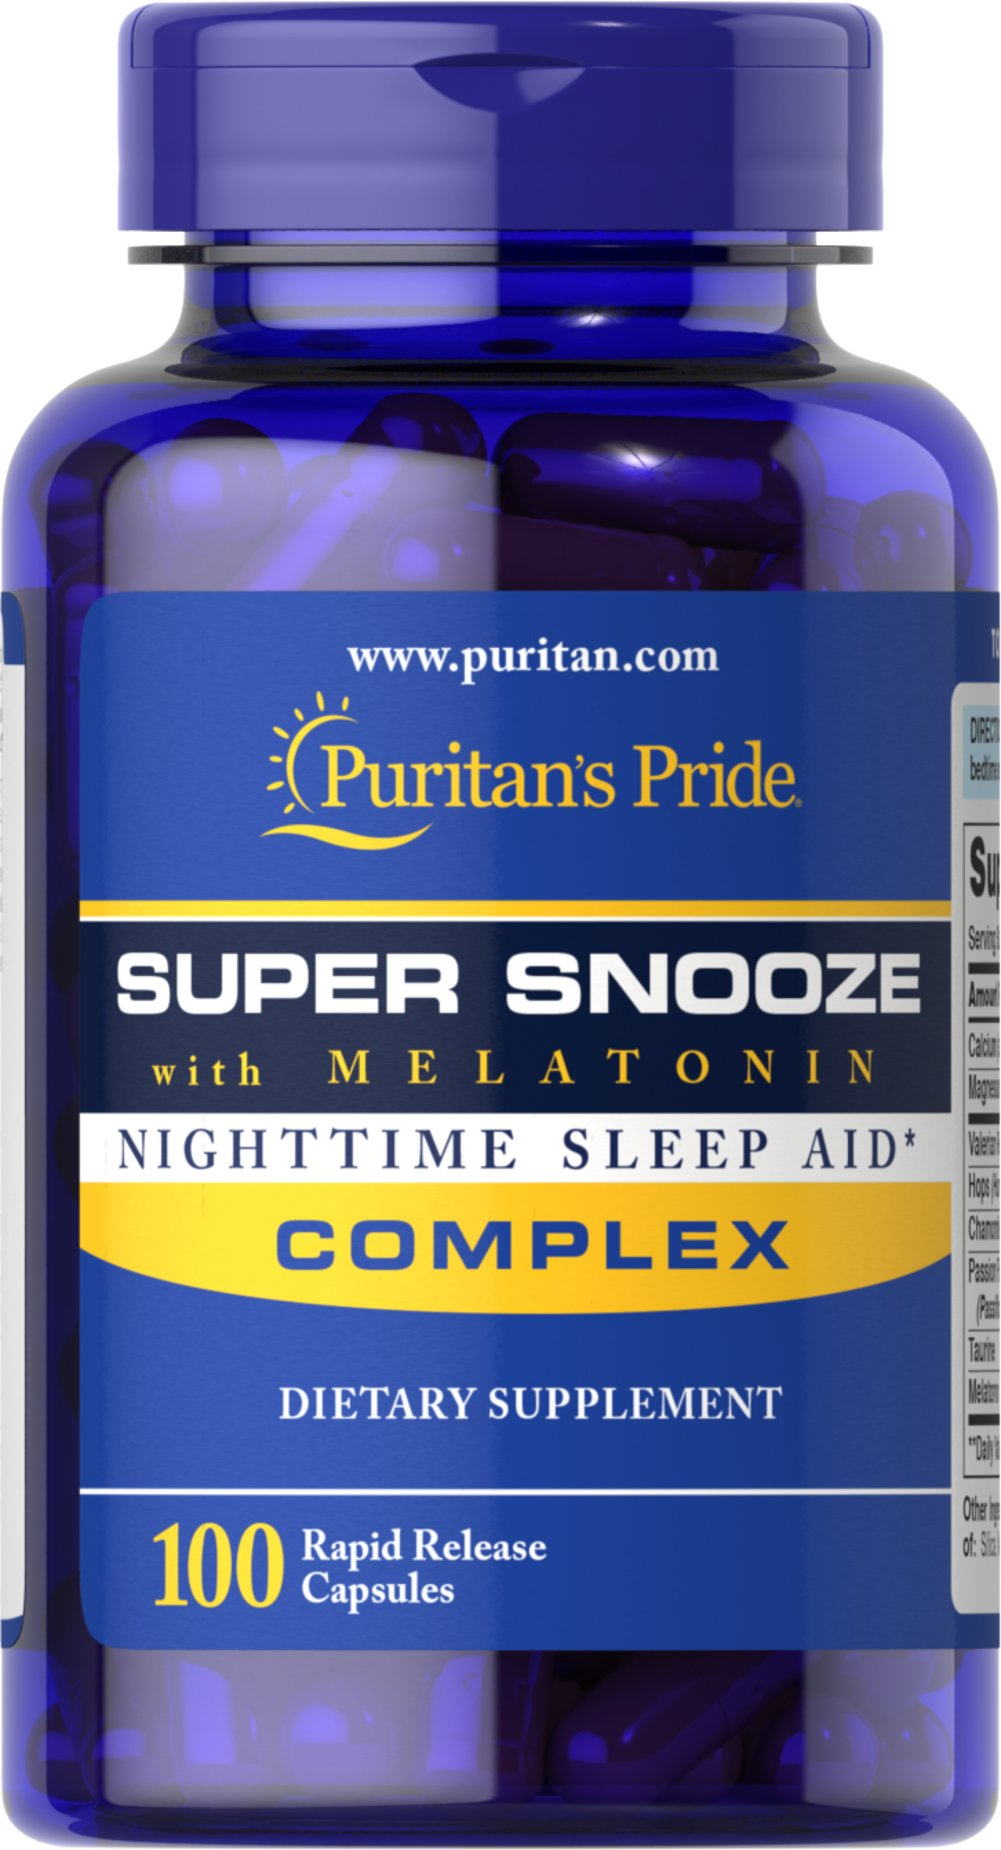 Super Snooze with Melatonin Thumbnail Alternate Bottle View